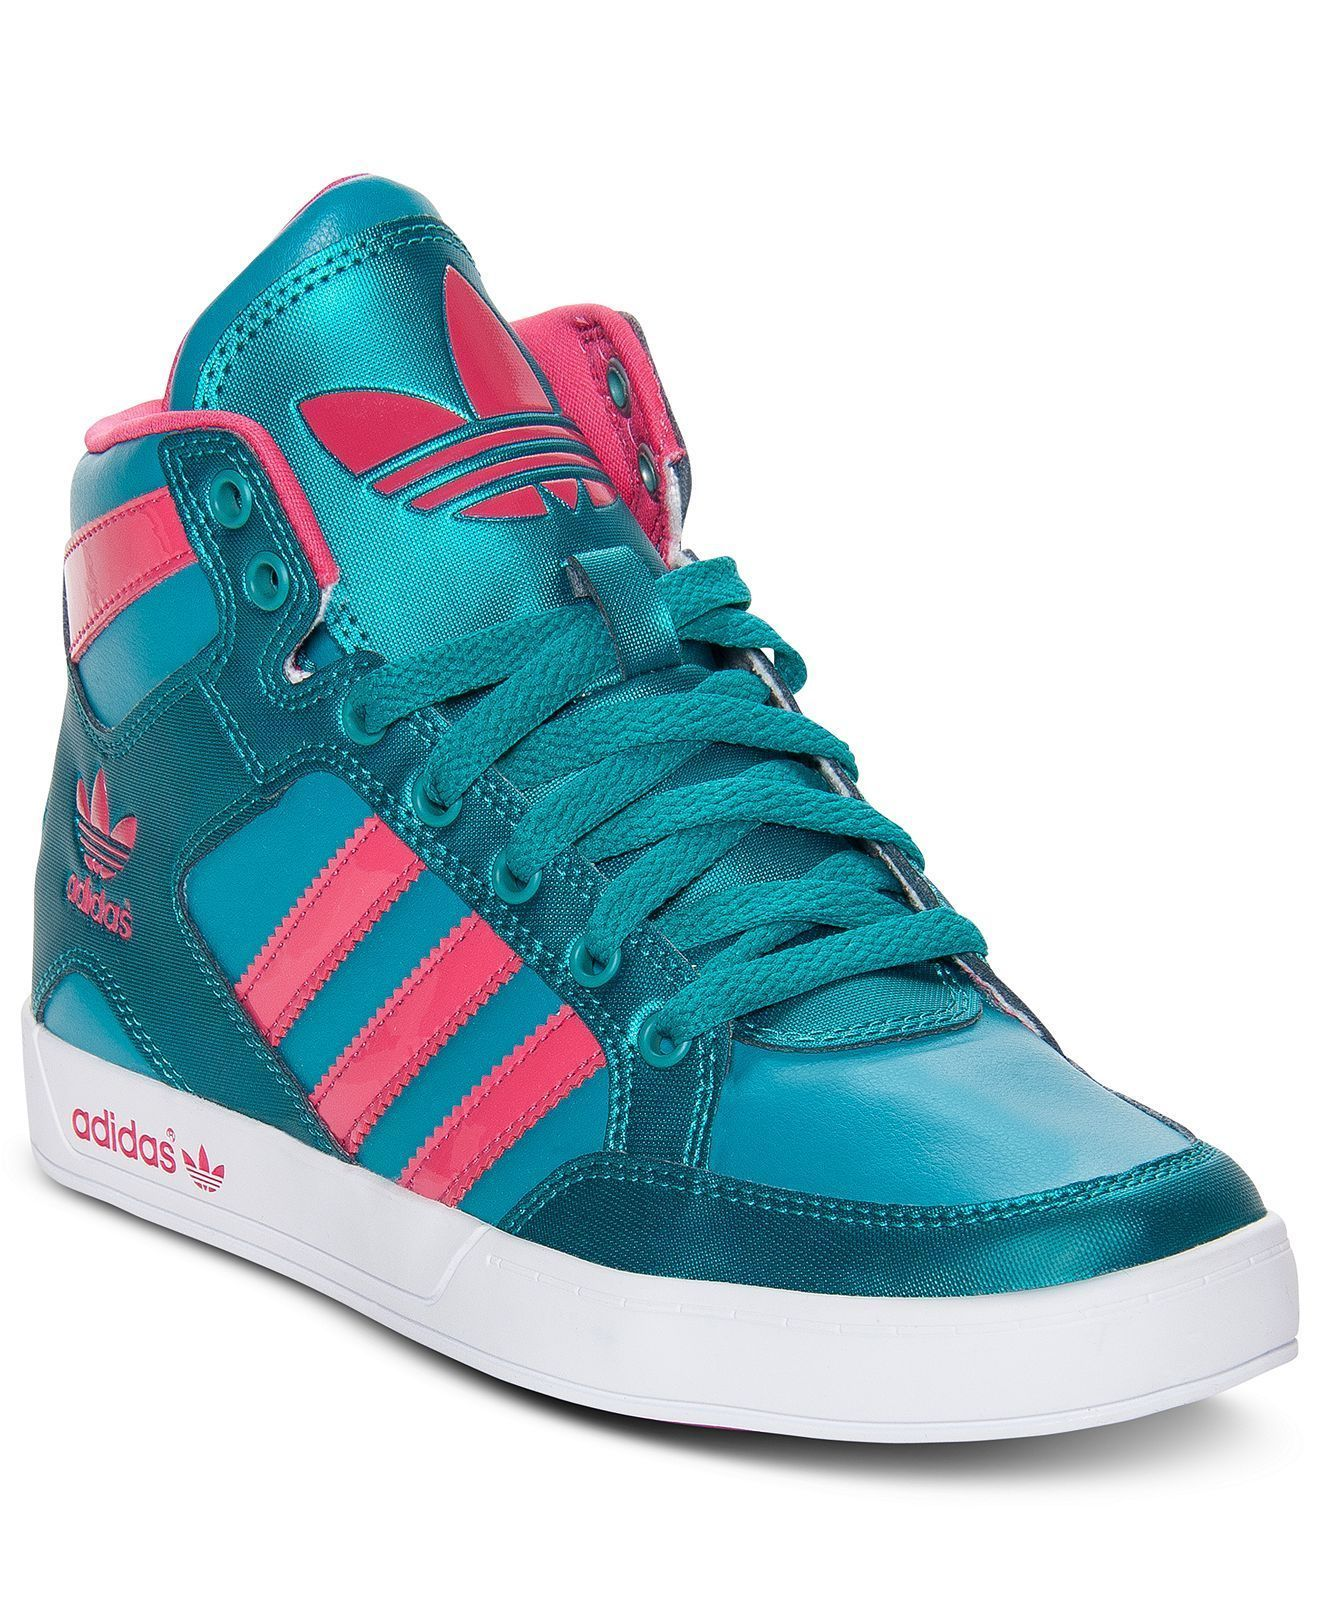 a25f2343c1eb adidas Womens Shoes